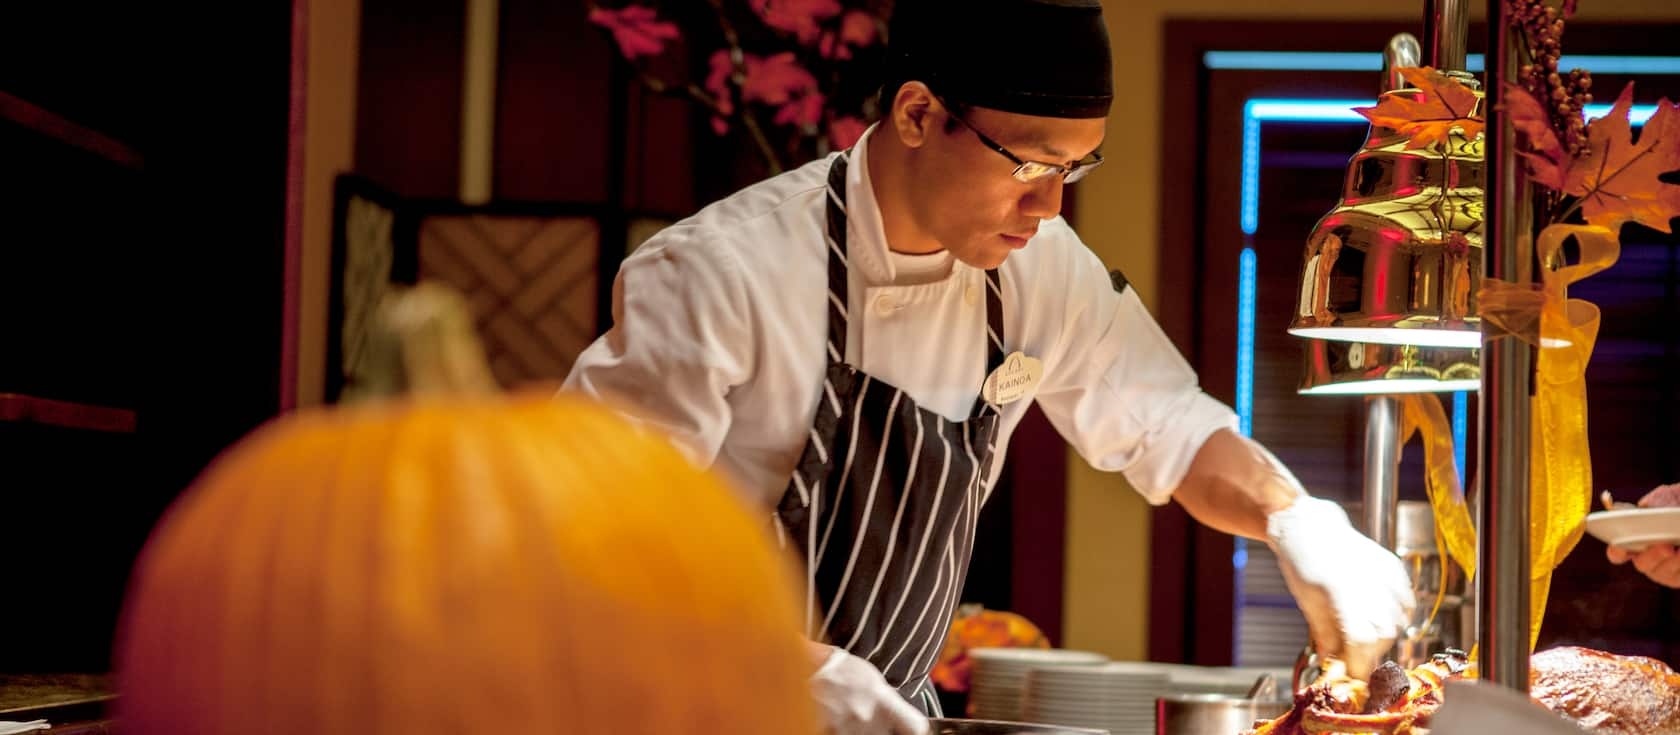 A chef wearing an apron and bandana puts the finishing touches on a dish at a serving station decorated with Thanksgiving décor that includes a pumpkin